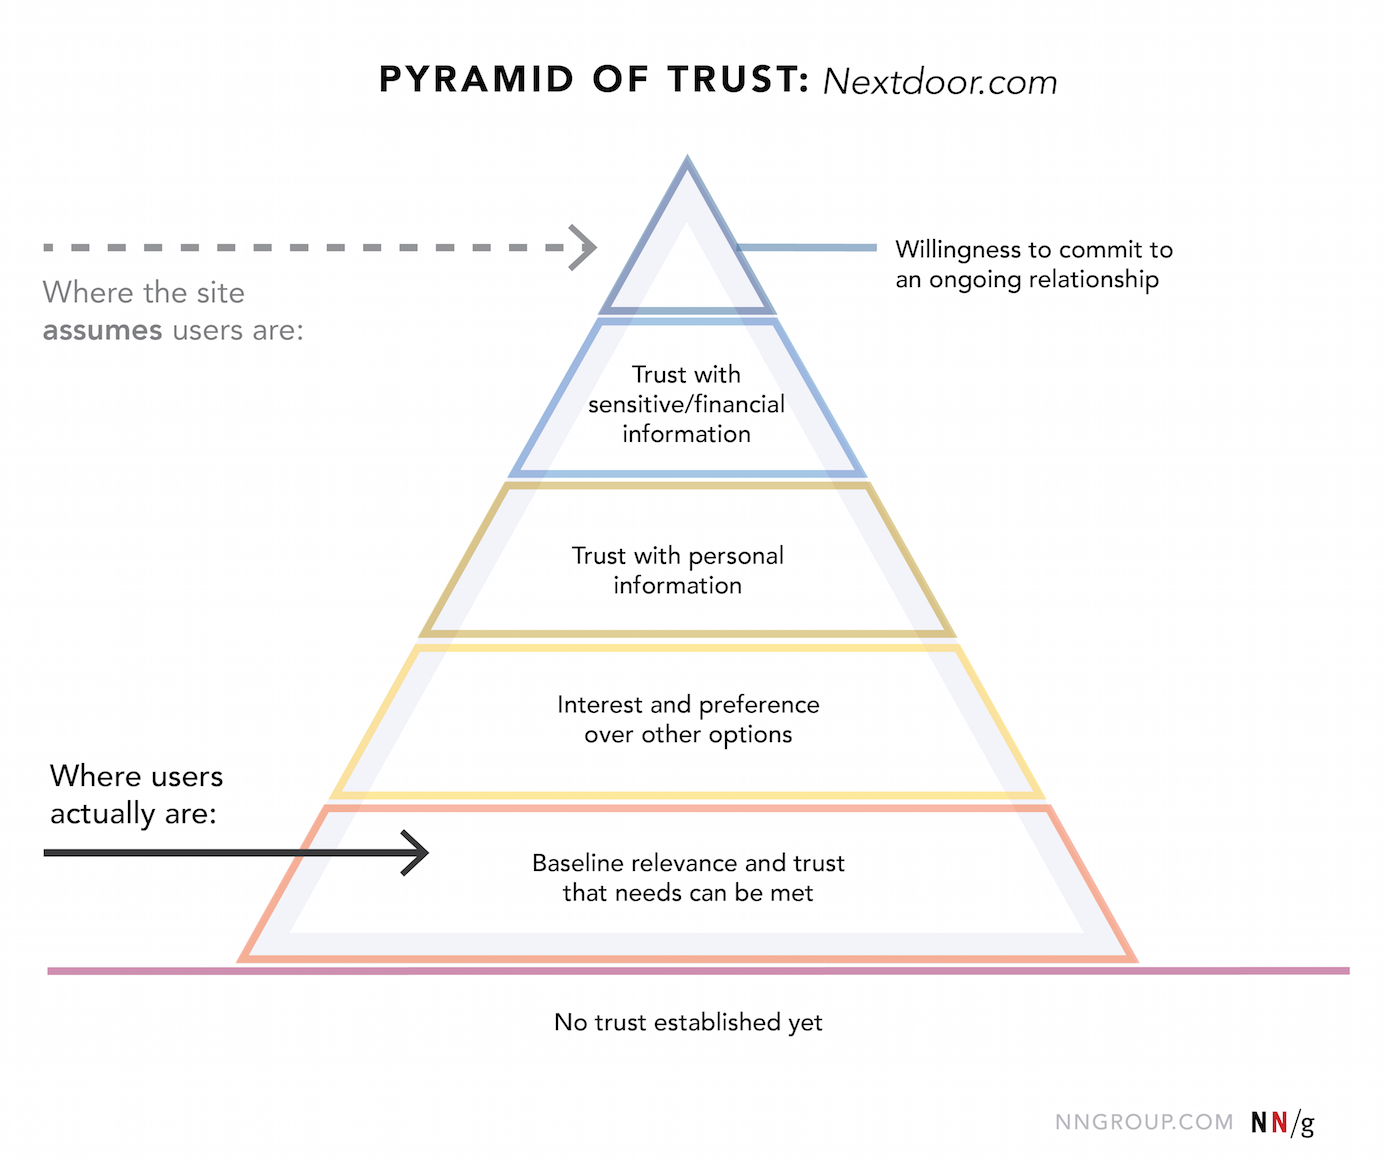 The pyramid of trust for Nextdoor.com shows where the site assumes users are compared to where they actually are.